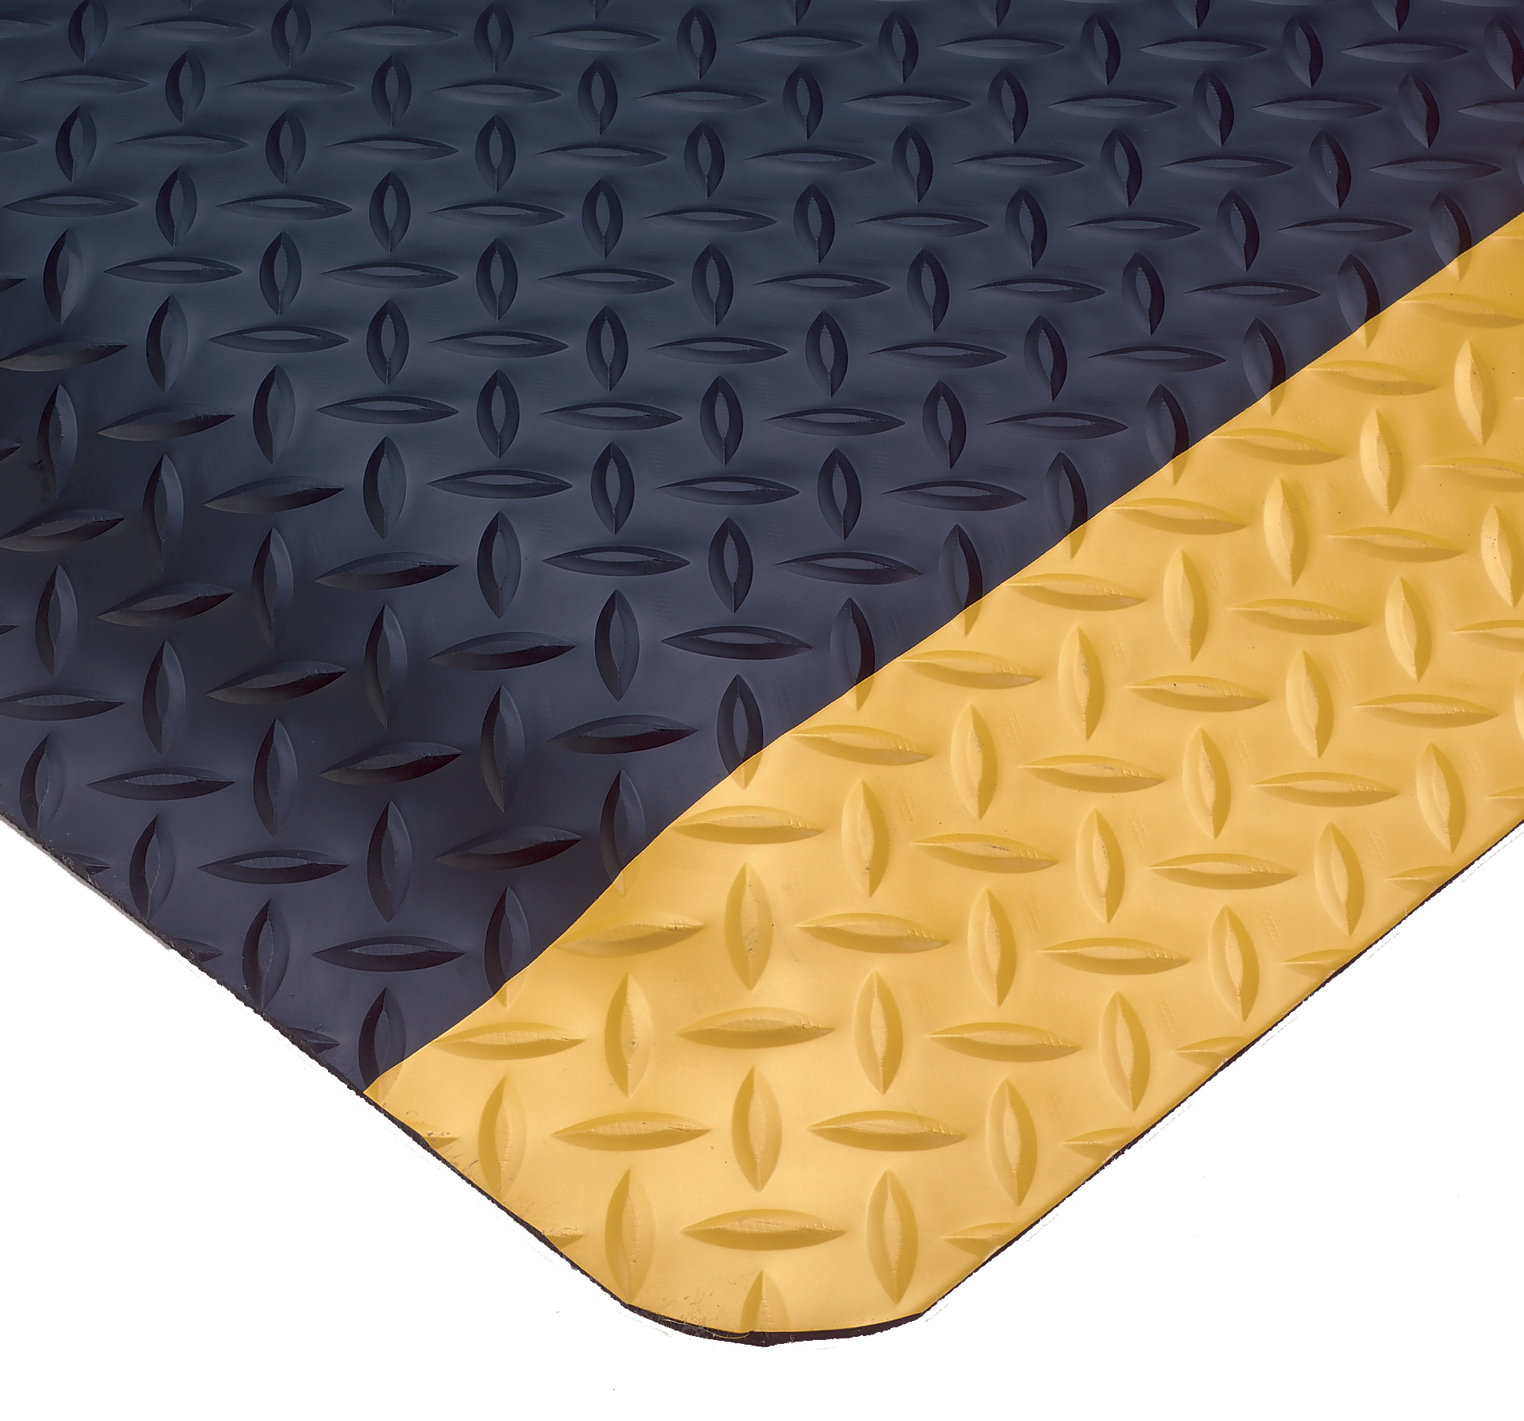 Diamond Plate Anti-Fatigue Rubber mats